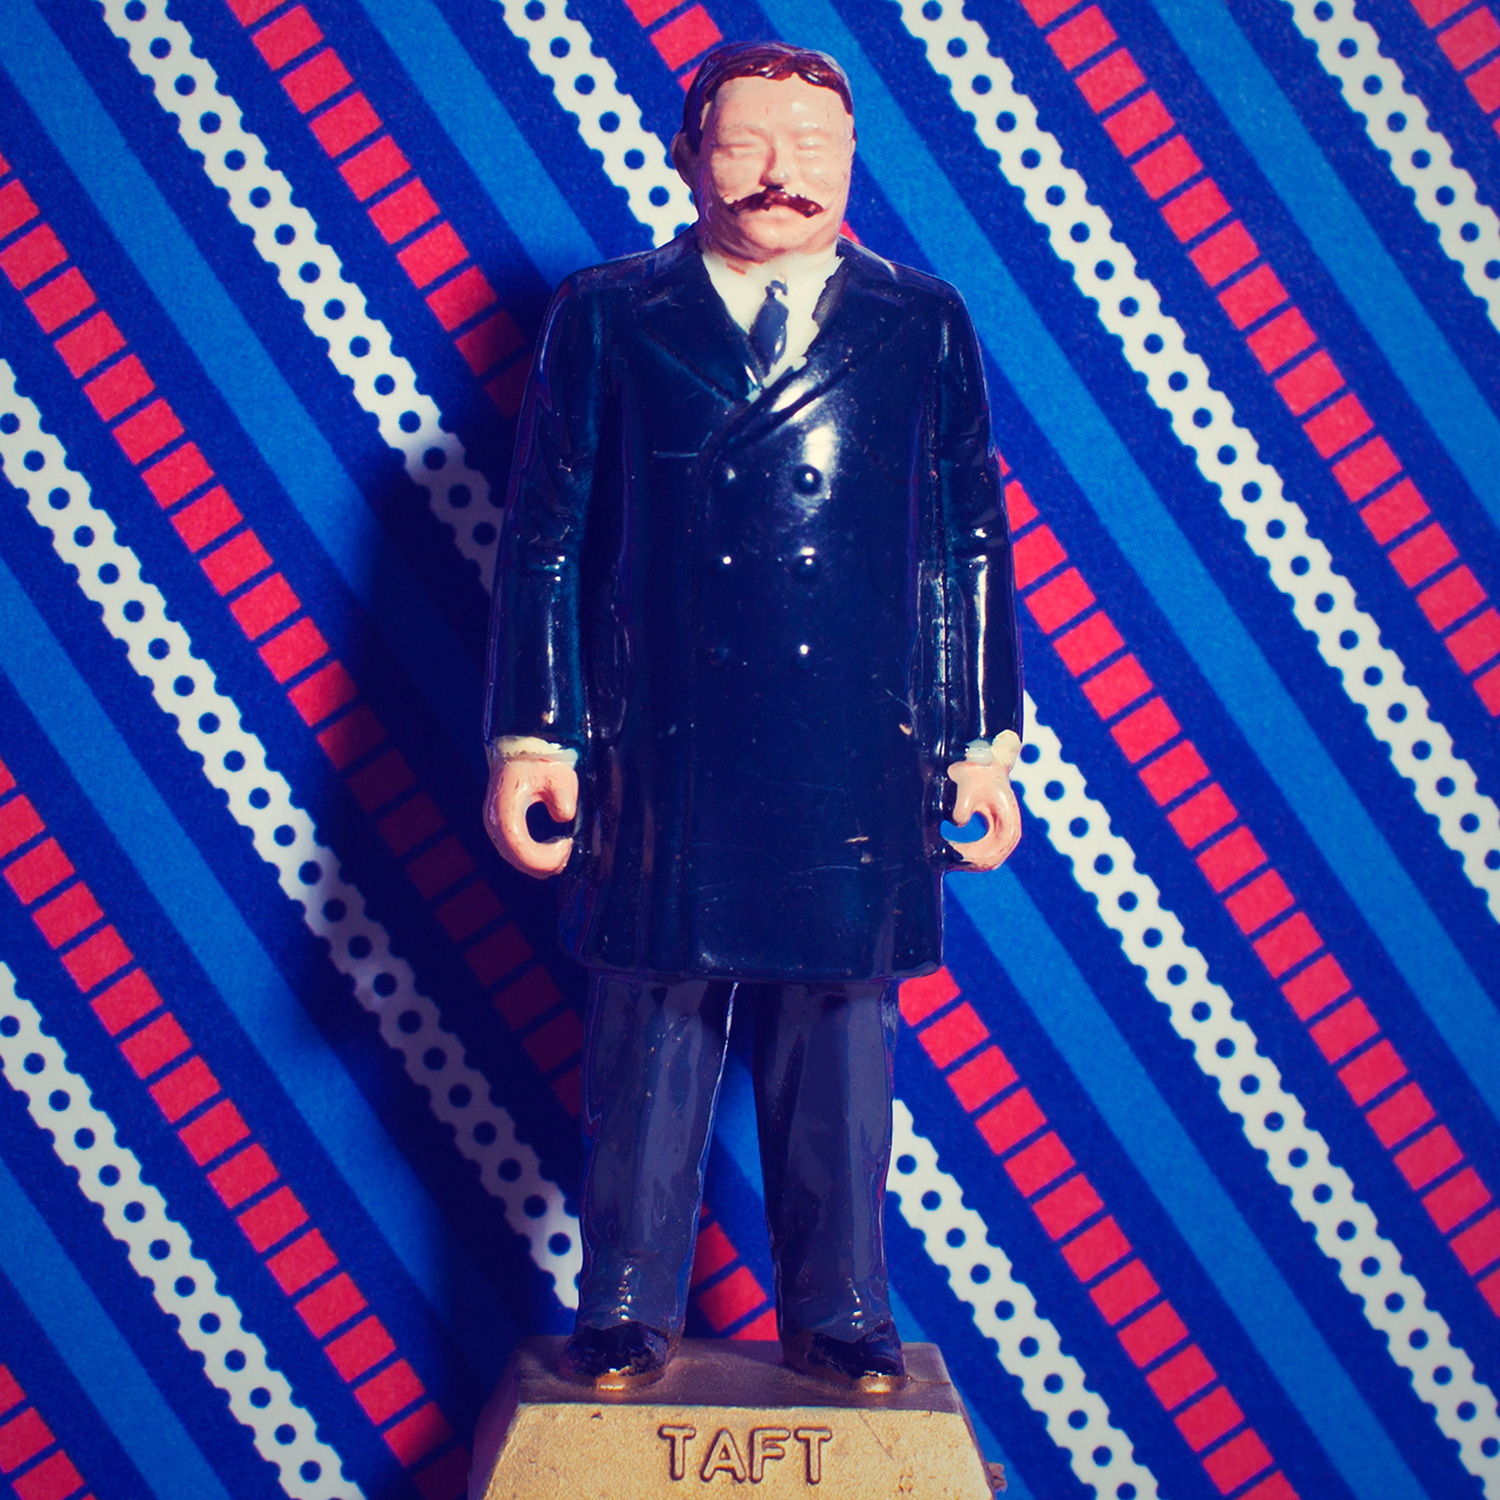 William Howard Taft: This chief, not that chief